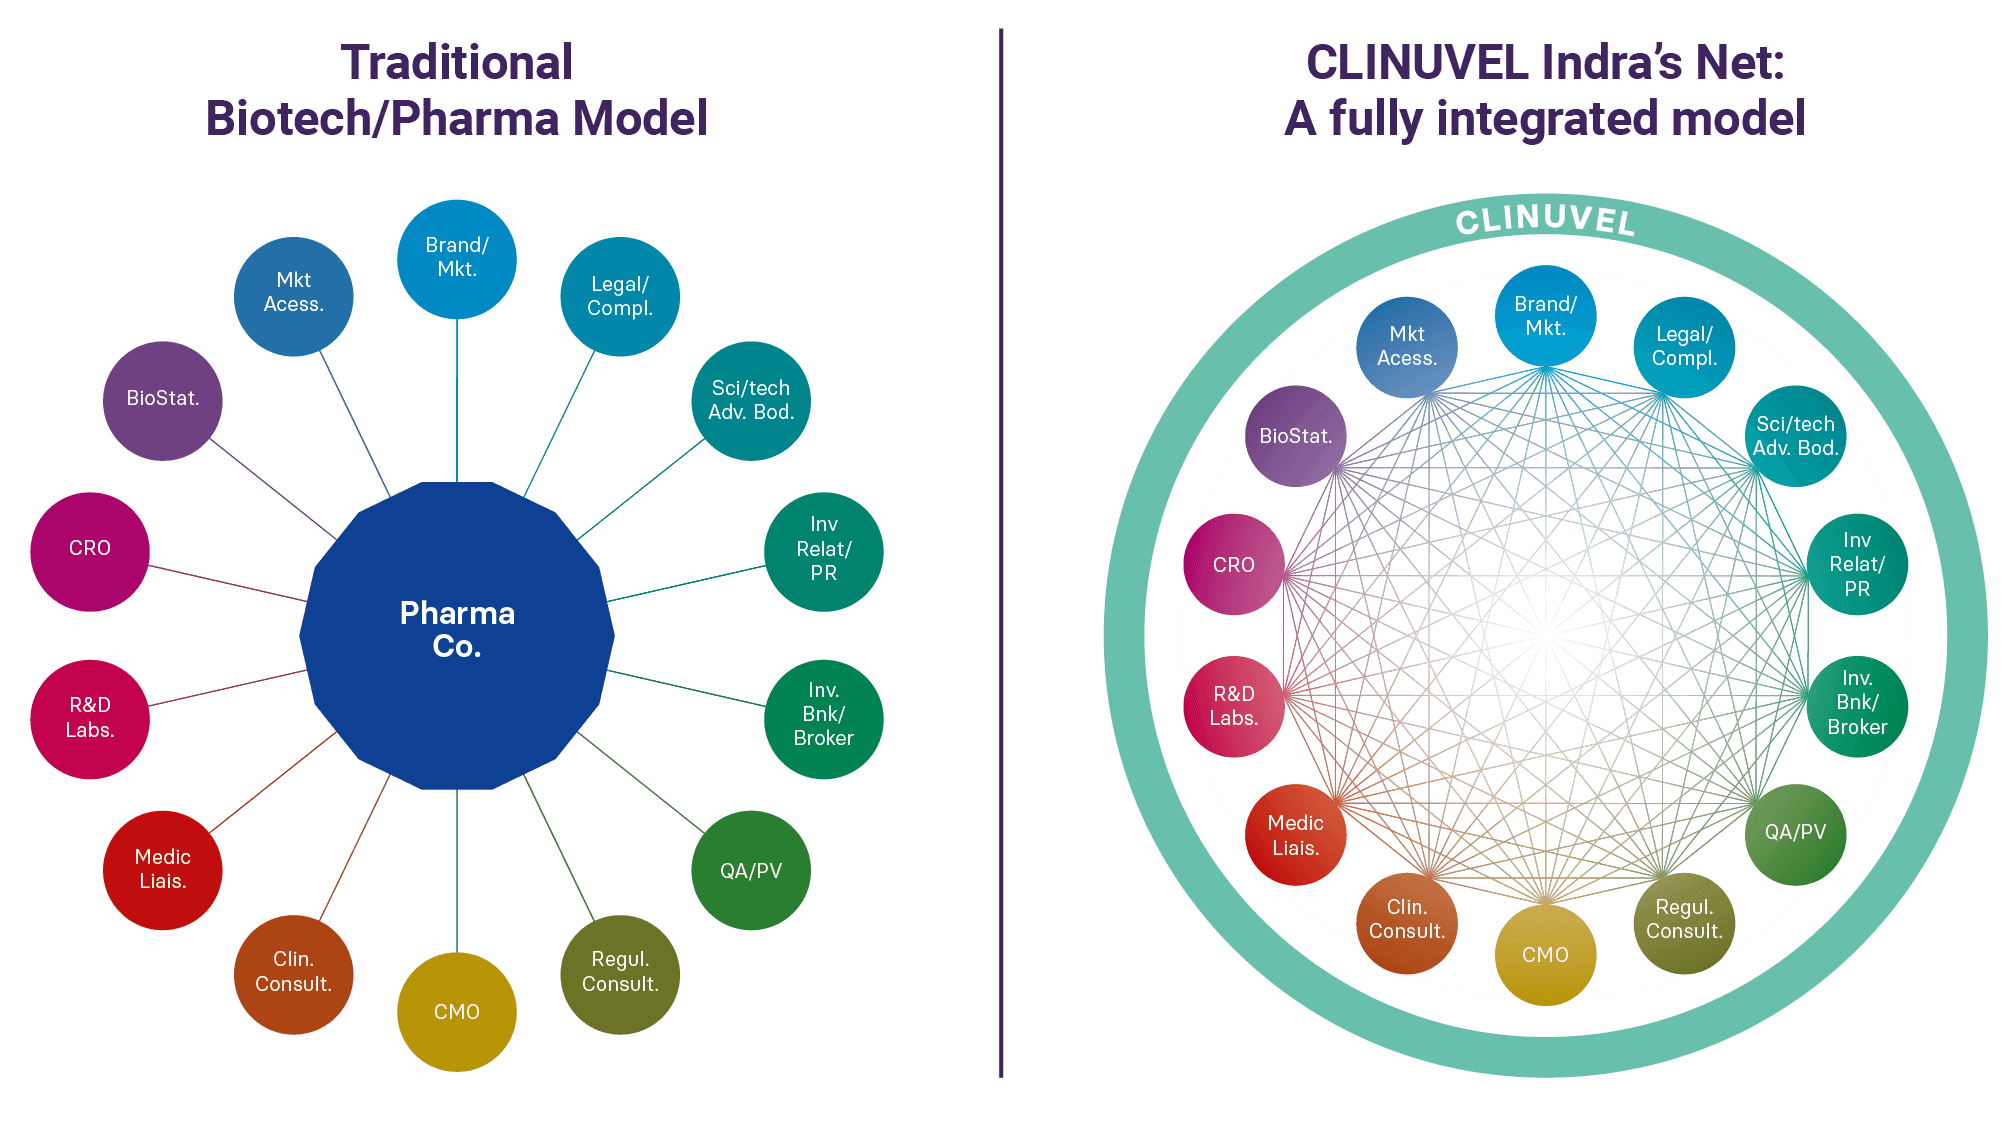 CLINUVELS Indra's Net: A fully integrated model